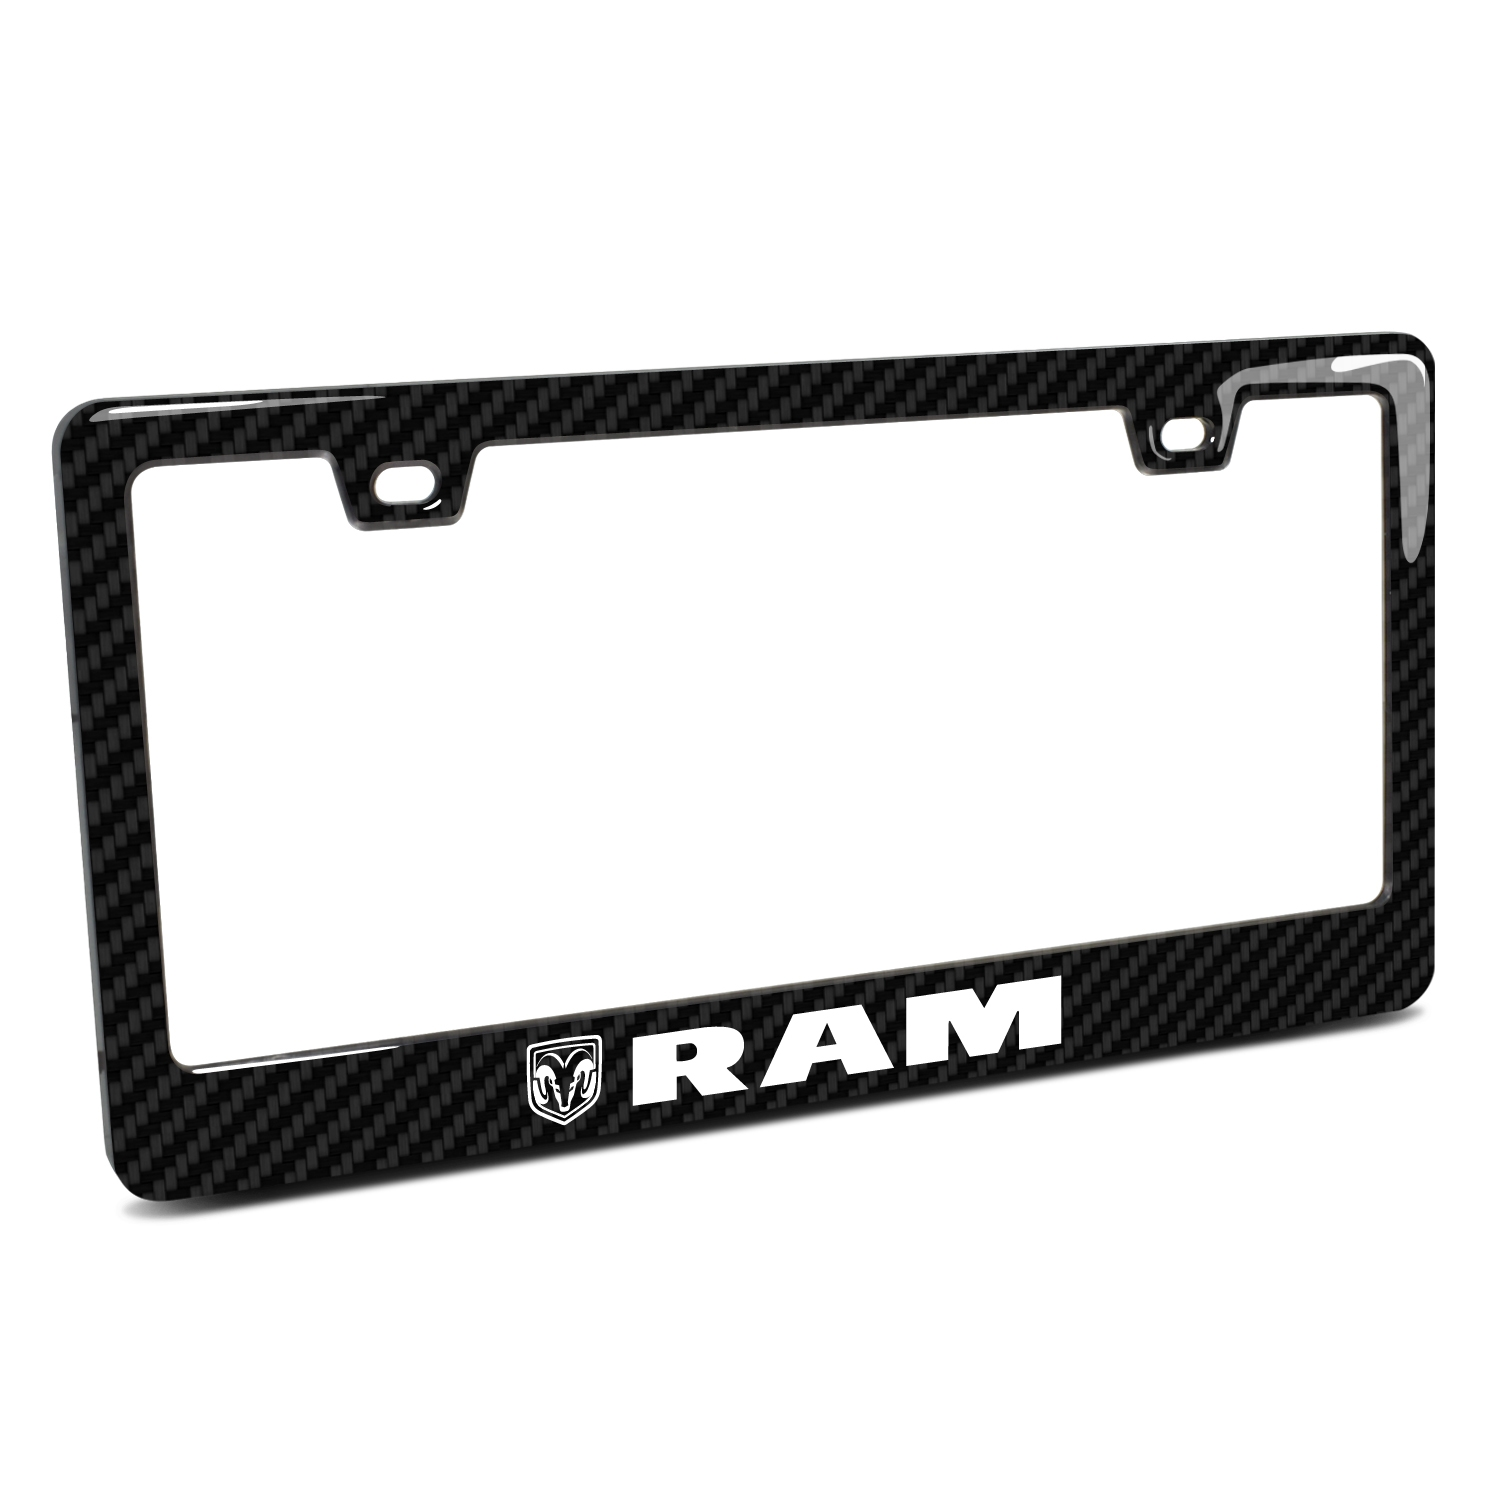 RAM Black Real 3K Carbon Fiber Finish ABS Plastic License Plate Frame